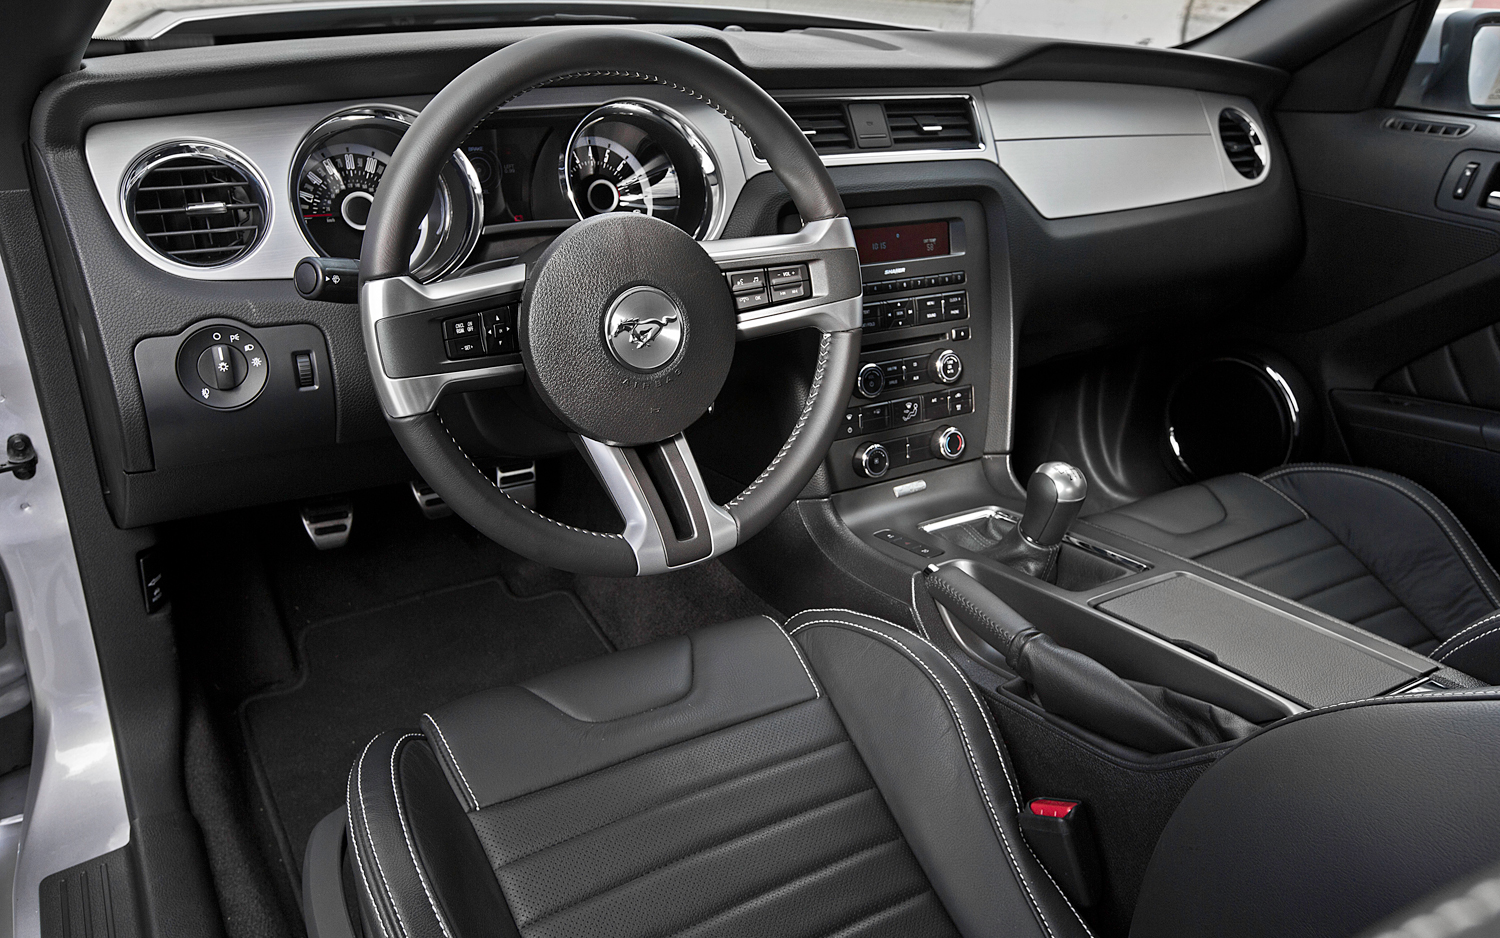 Click image for larger version  Name:Mustang Dash.jpg Views:1781 Size:979.2 KB ID:151495